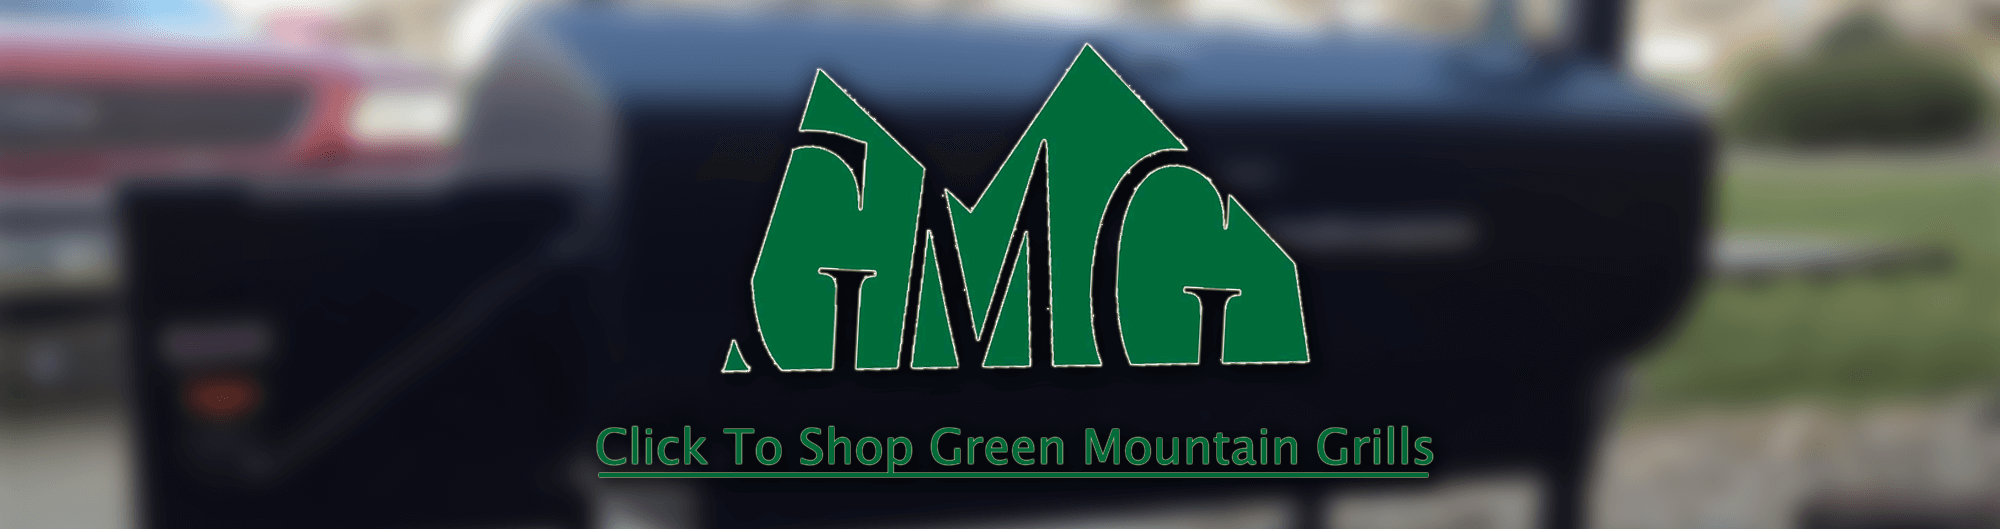 Buy Green Mountain Grills